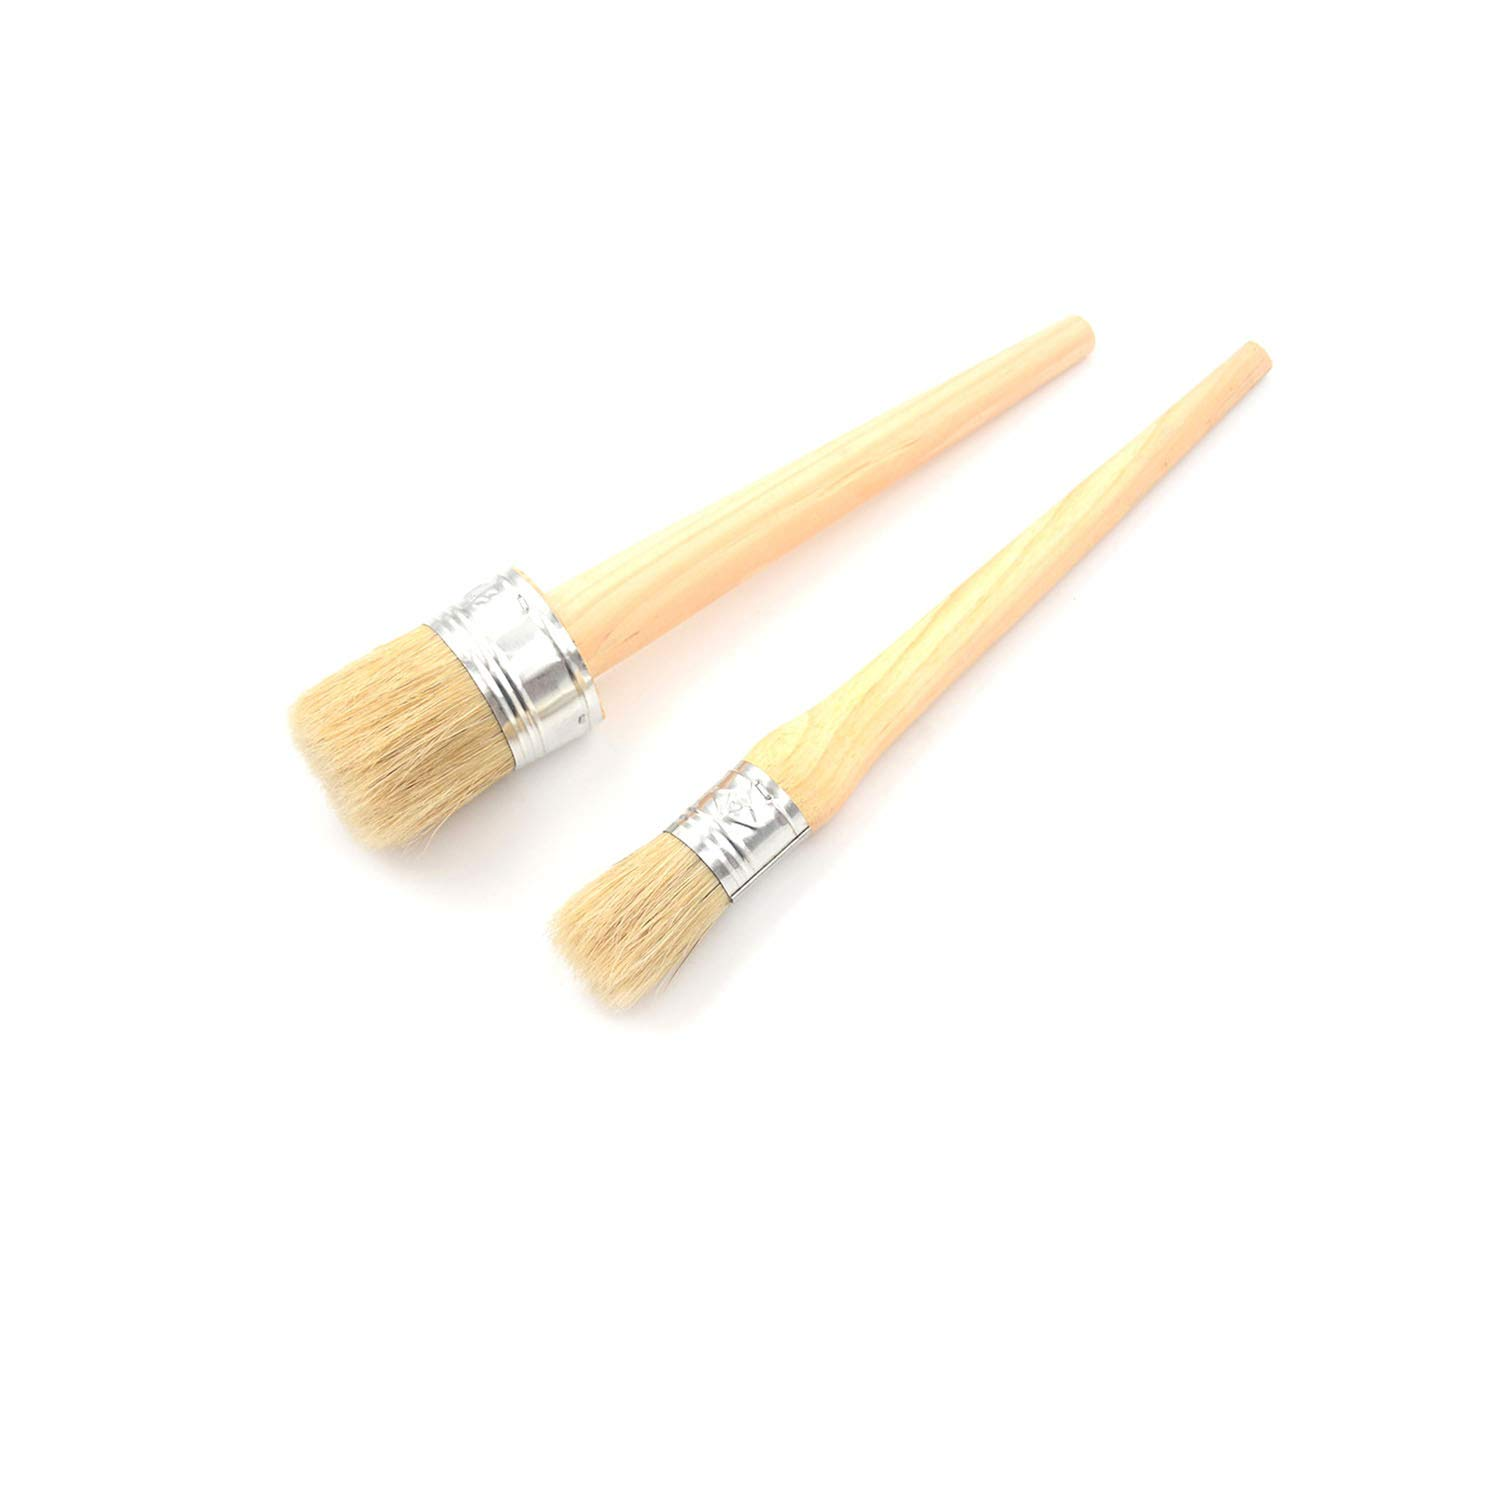 1 PC 185mm Long Round Bristle Chalk 25mm Wooden Handle Round Bristle Chalk Oil Paint Painting Wax Brushes by O-lovey